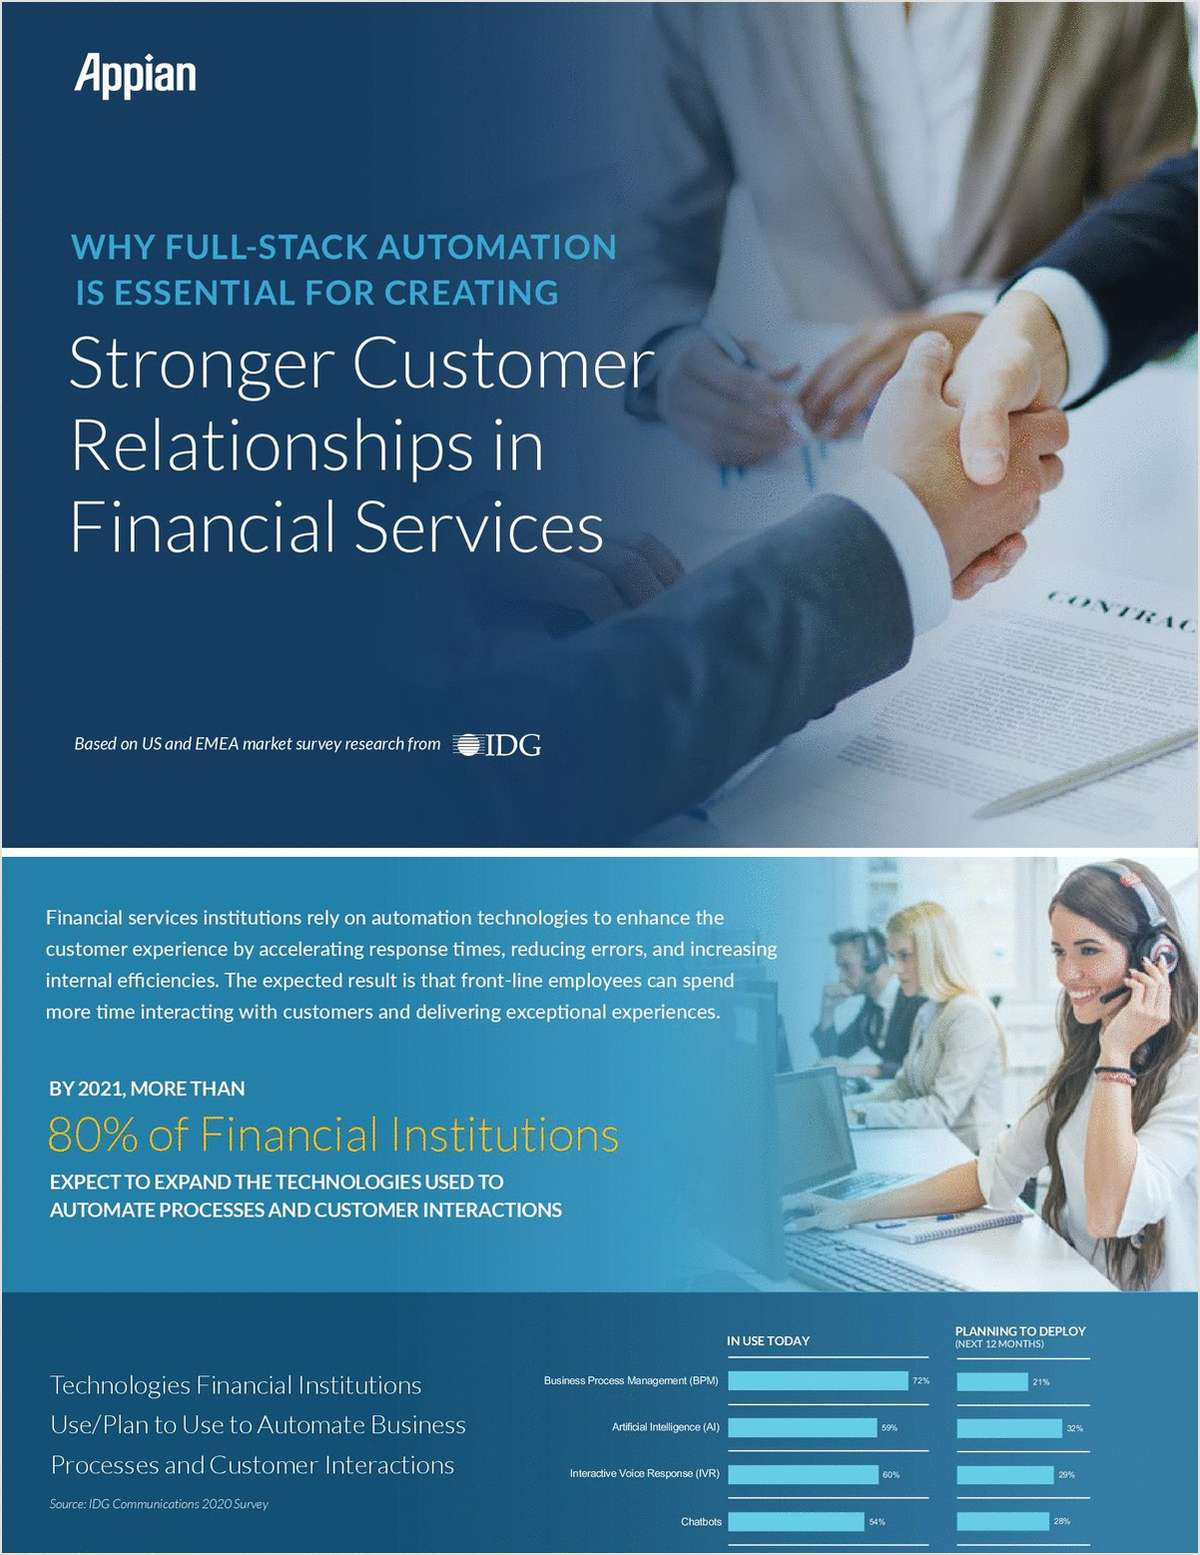 Why Full-Stack Automation Is Essential for Creating Stronger Customer Relationships In Financial Services